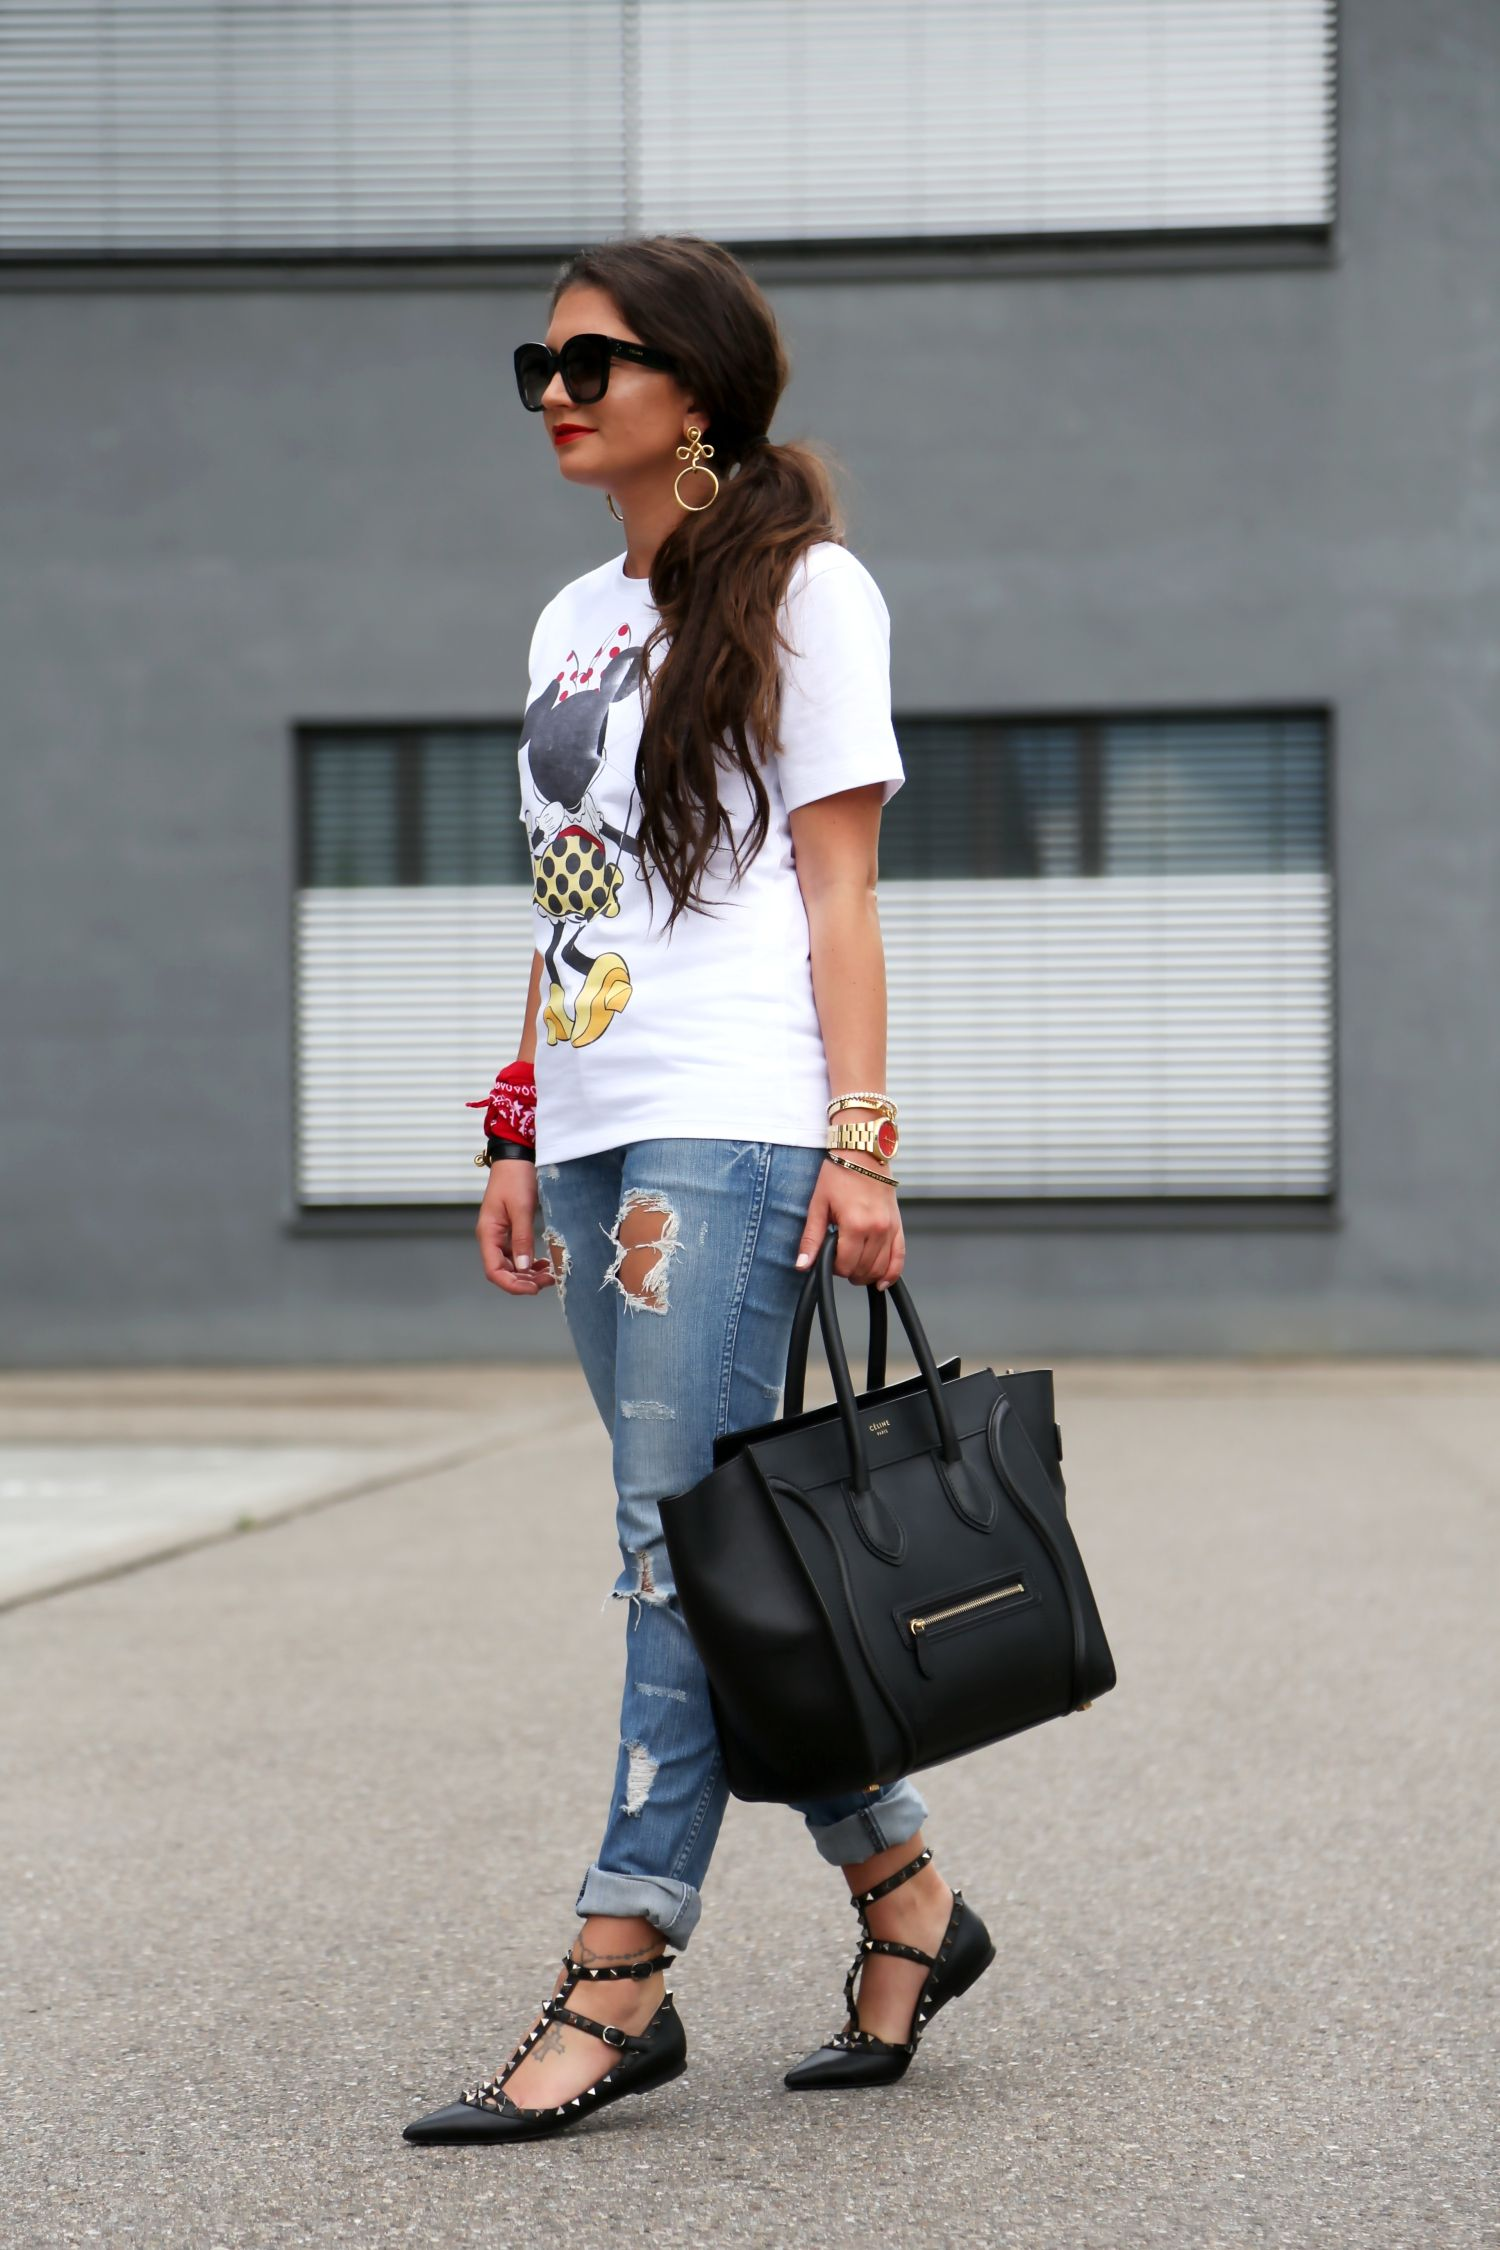 72b1dab7f56 outfit-victoria-beckham-minnie-mouse-shirt -ripped-jeans-valentino-rockstud-flats